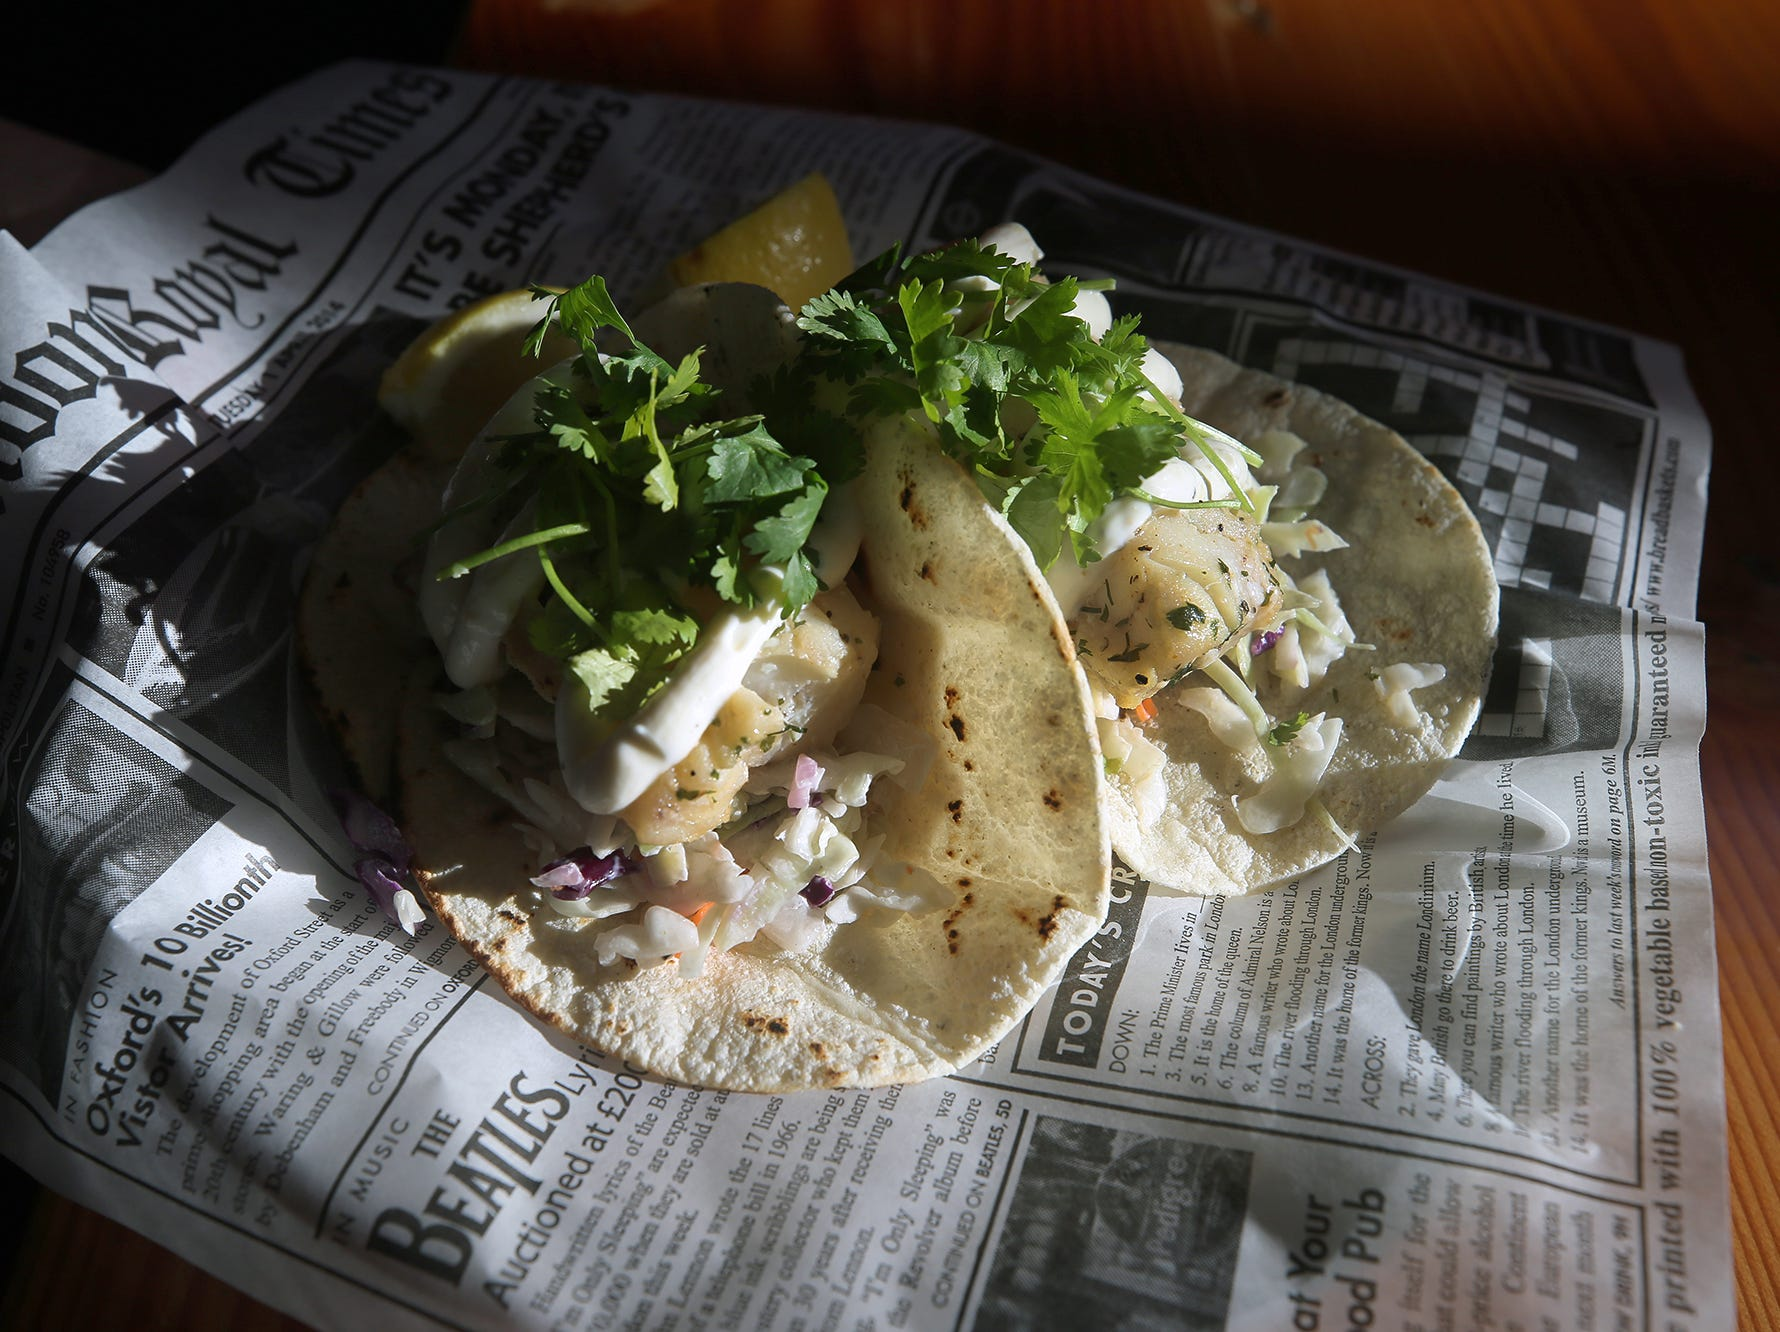 The Dock Bar & Eatery in the Port Orchard Market. Features fresh cod tacos wrapped in paper.